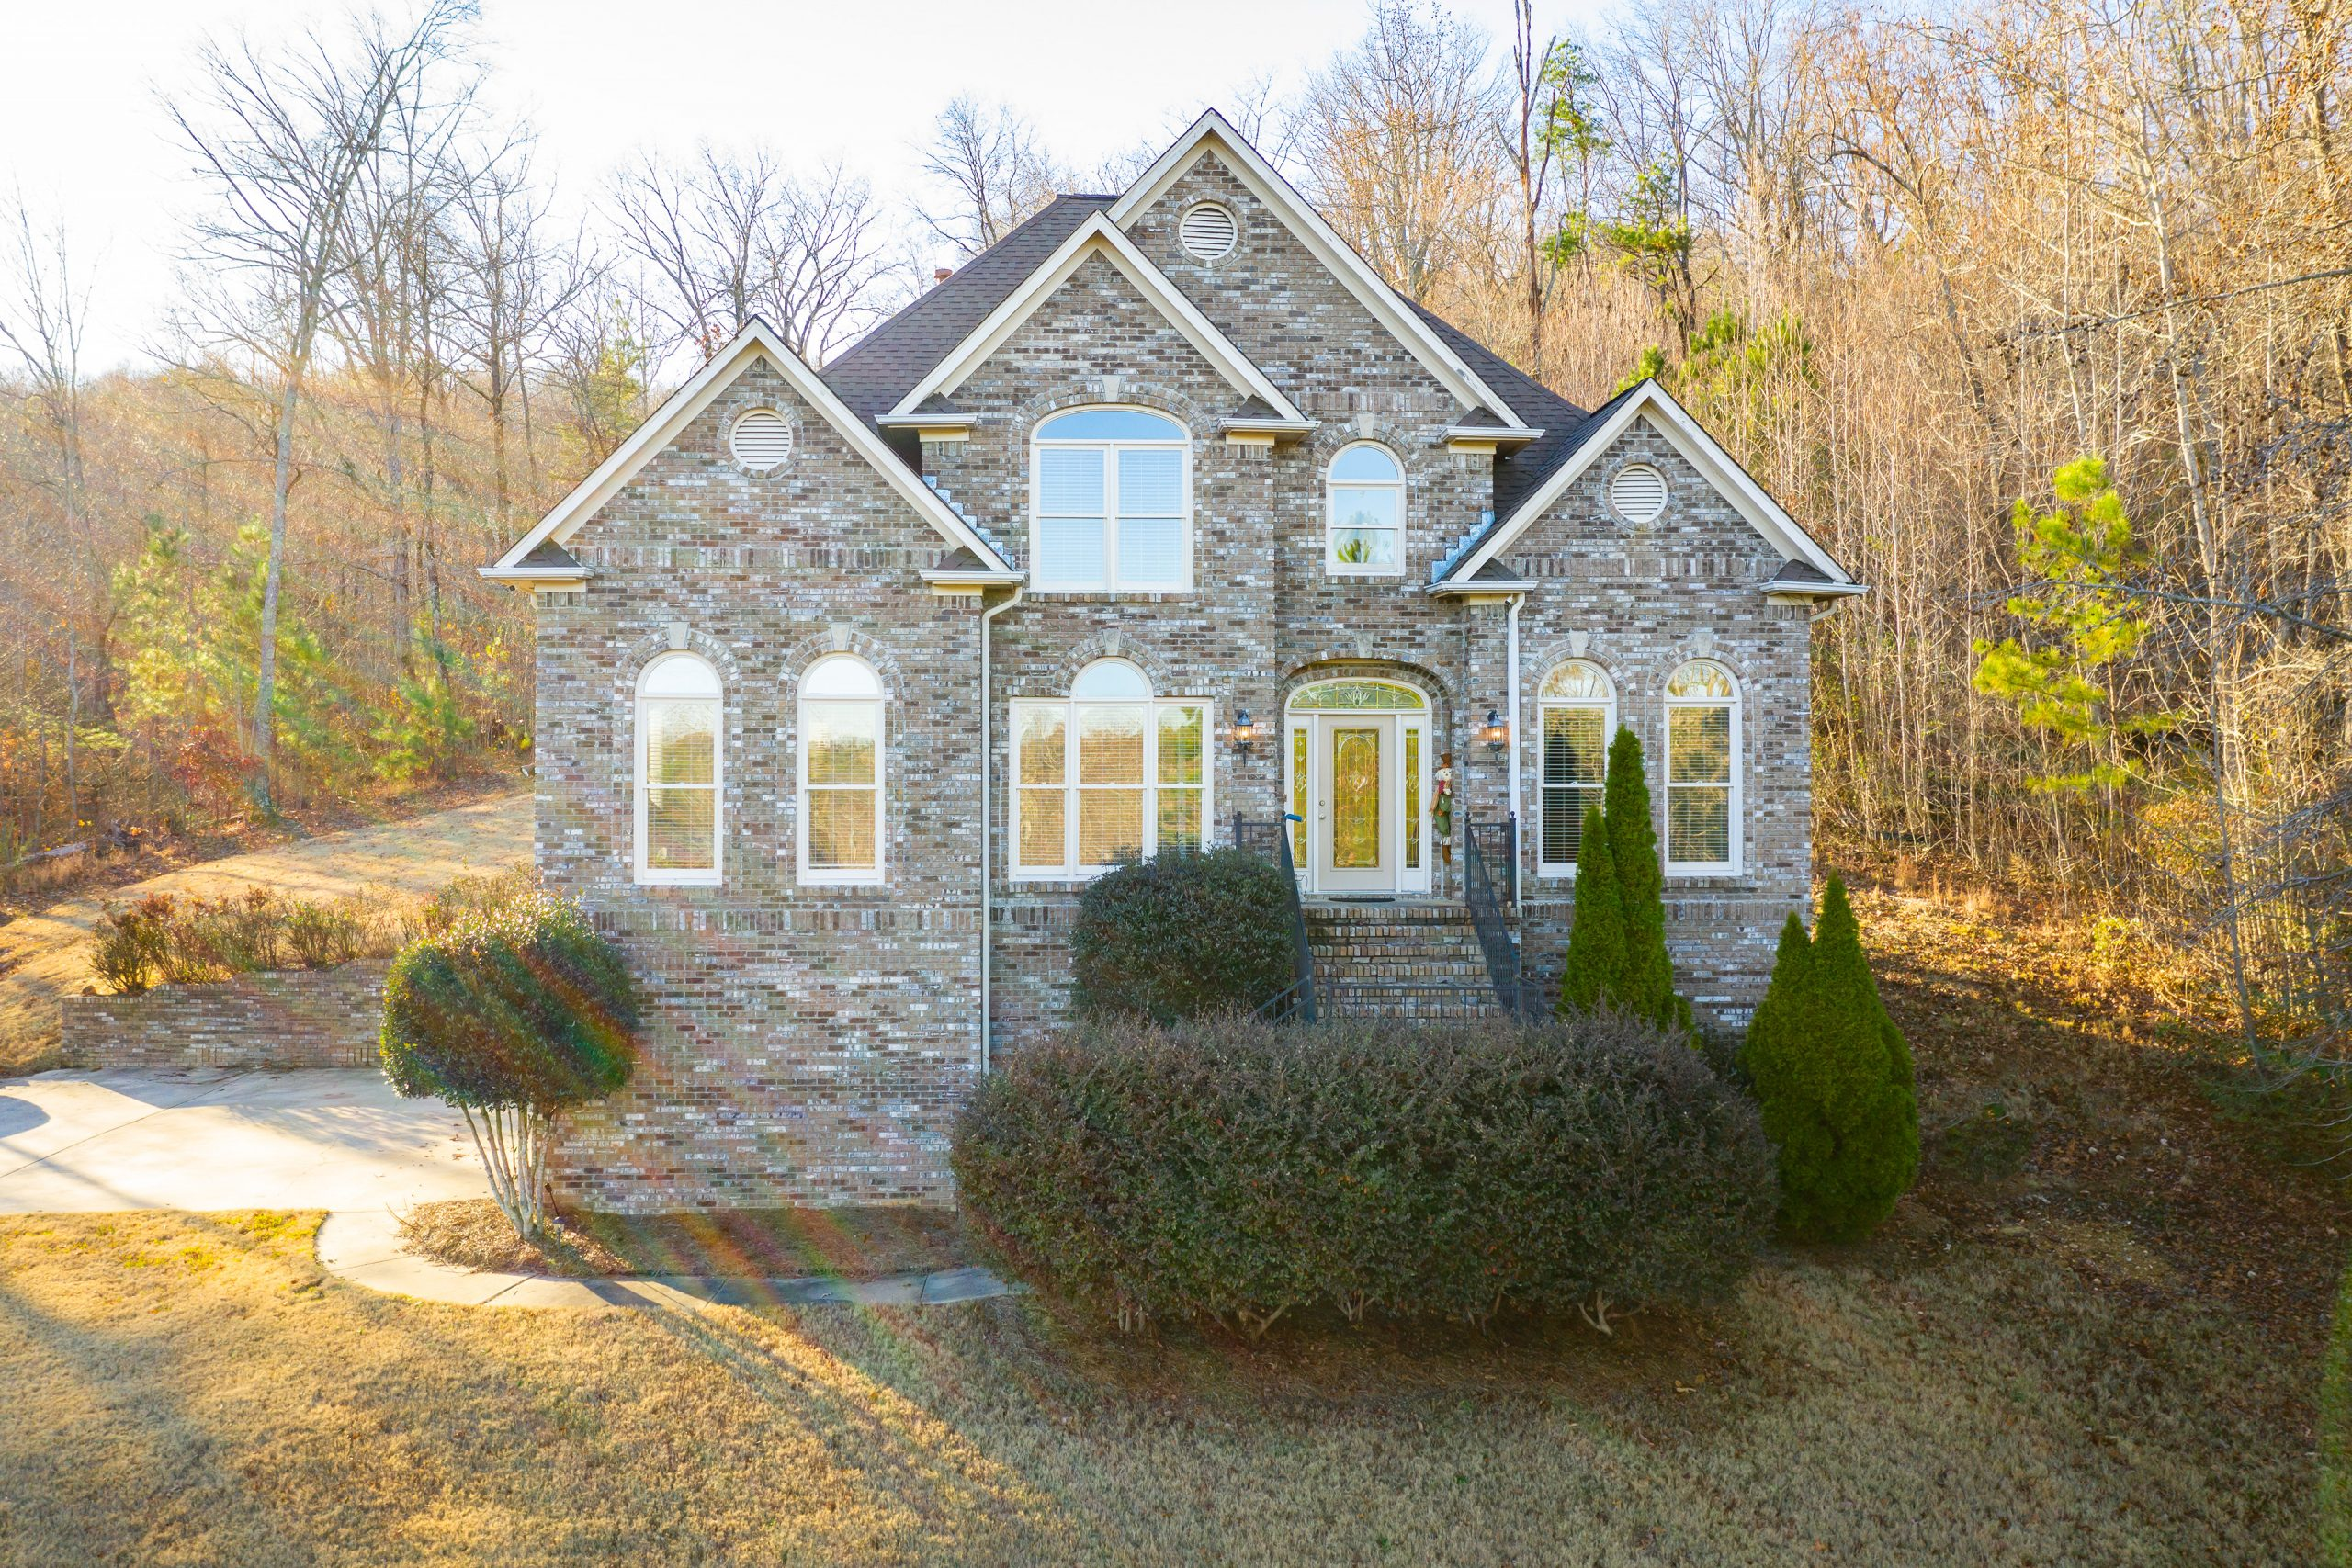 Listing Of The Week: Gorgeous 4 bed, 3.5 bath home located in Trussville